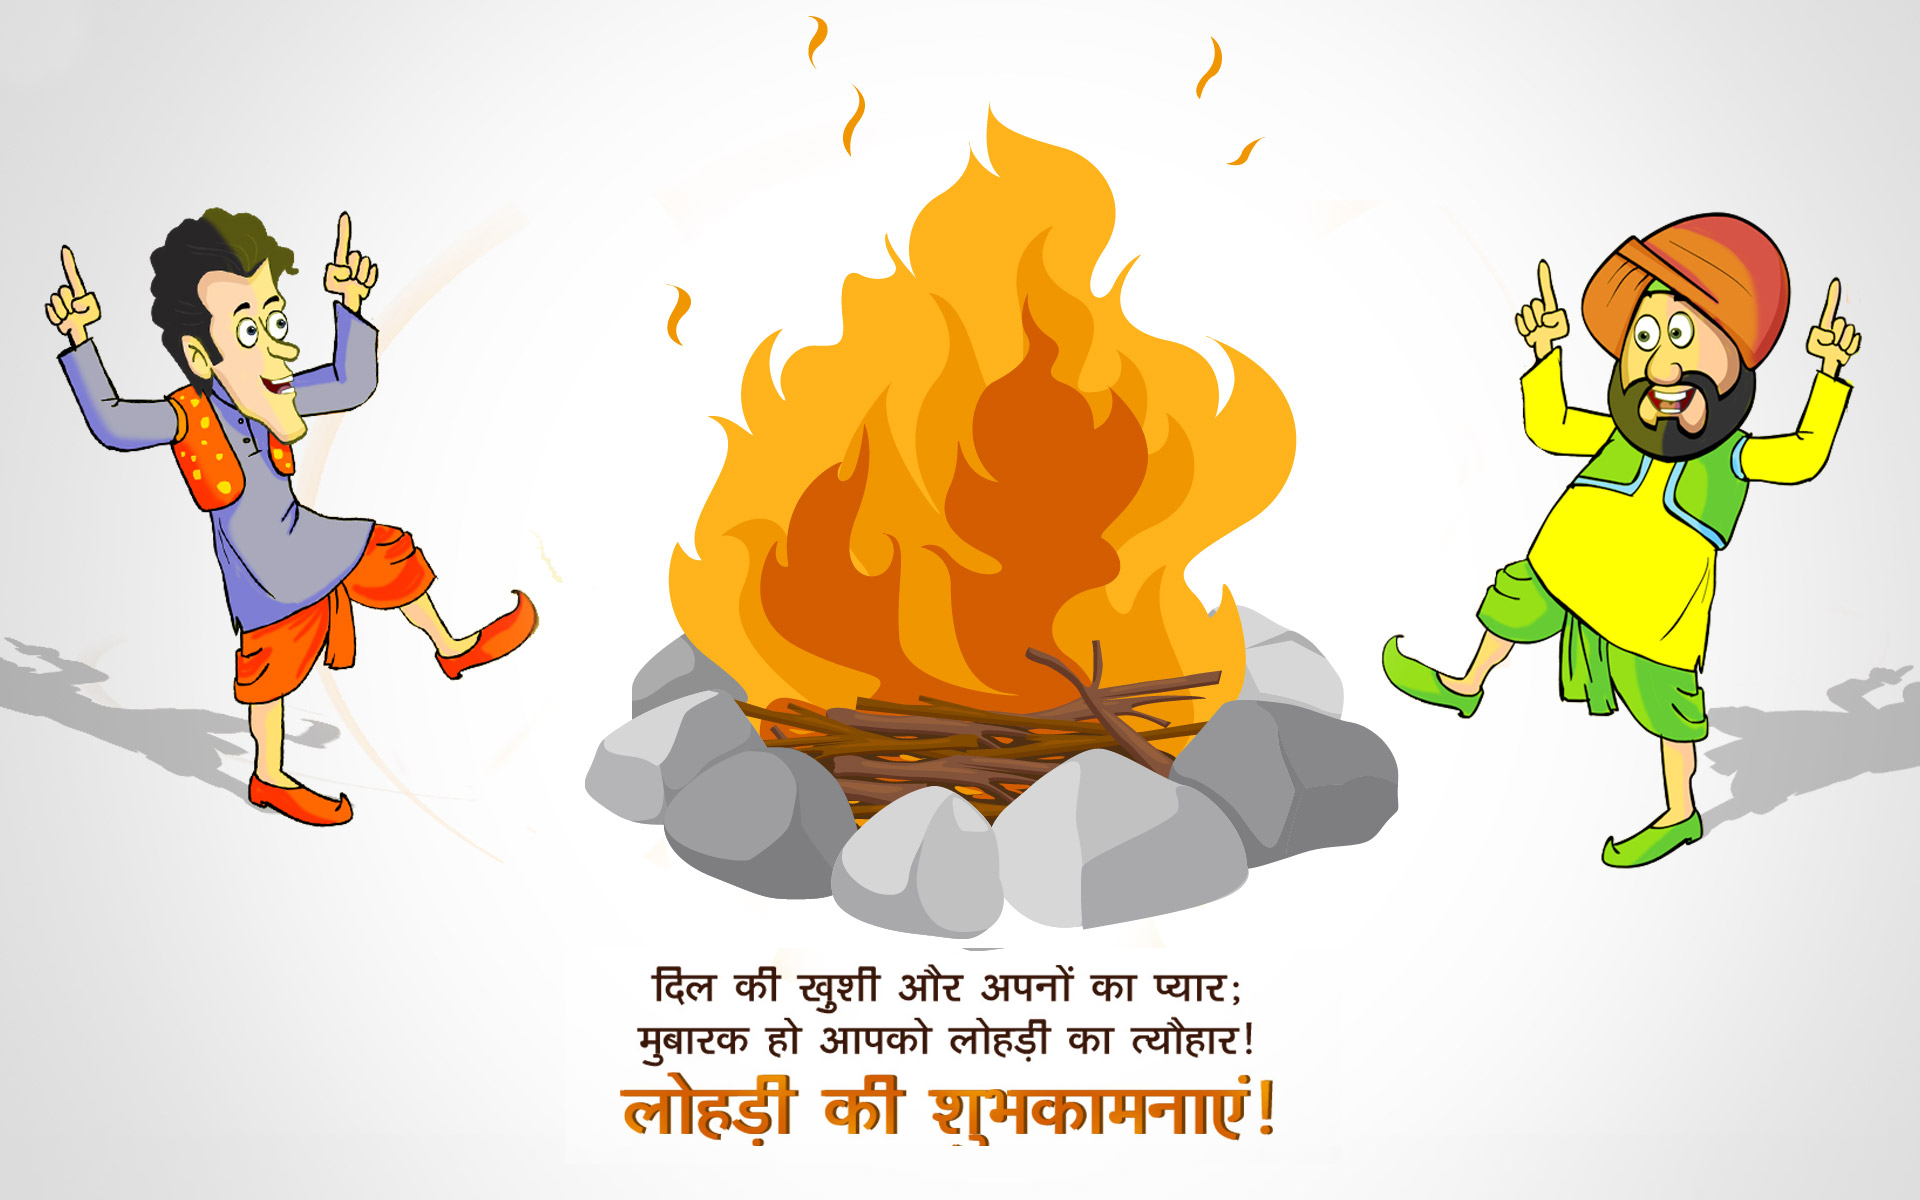 Happy Lohri 2016 Wishes images